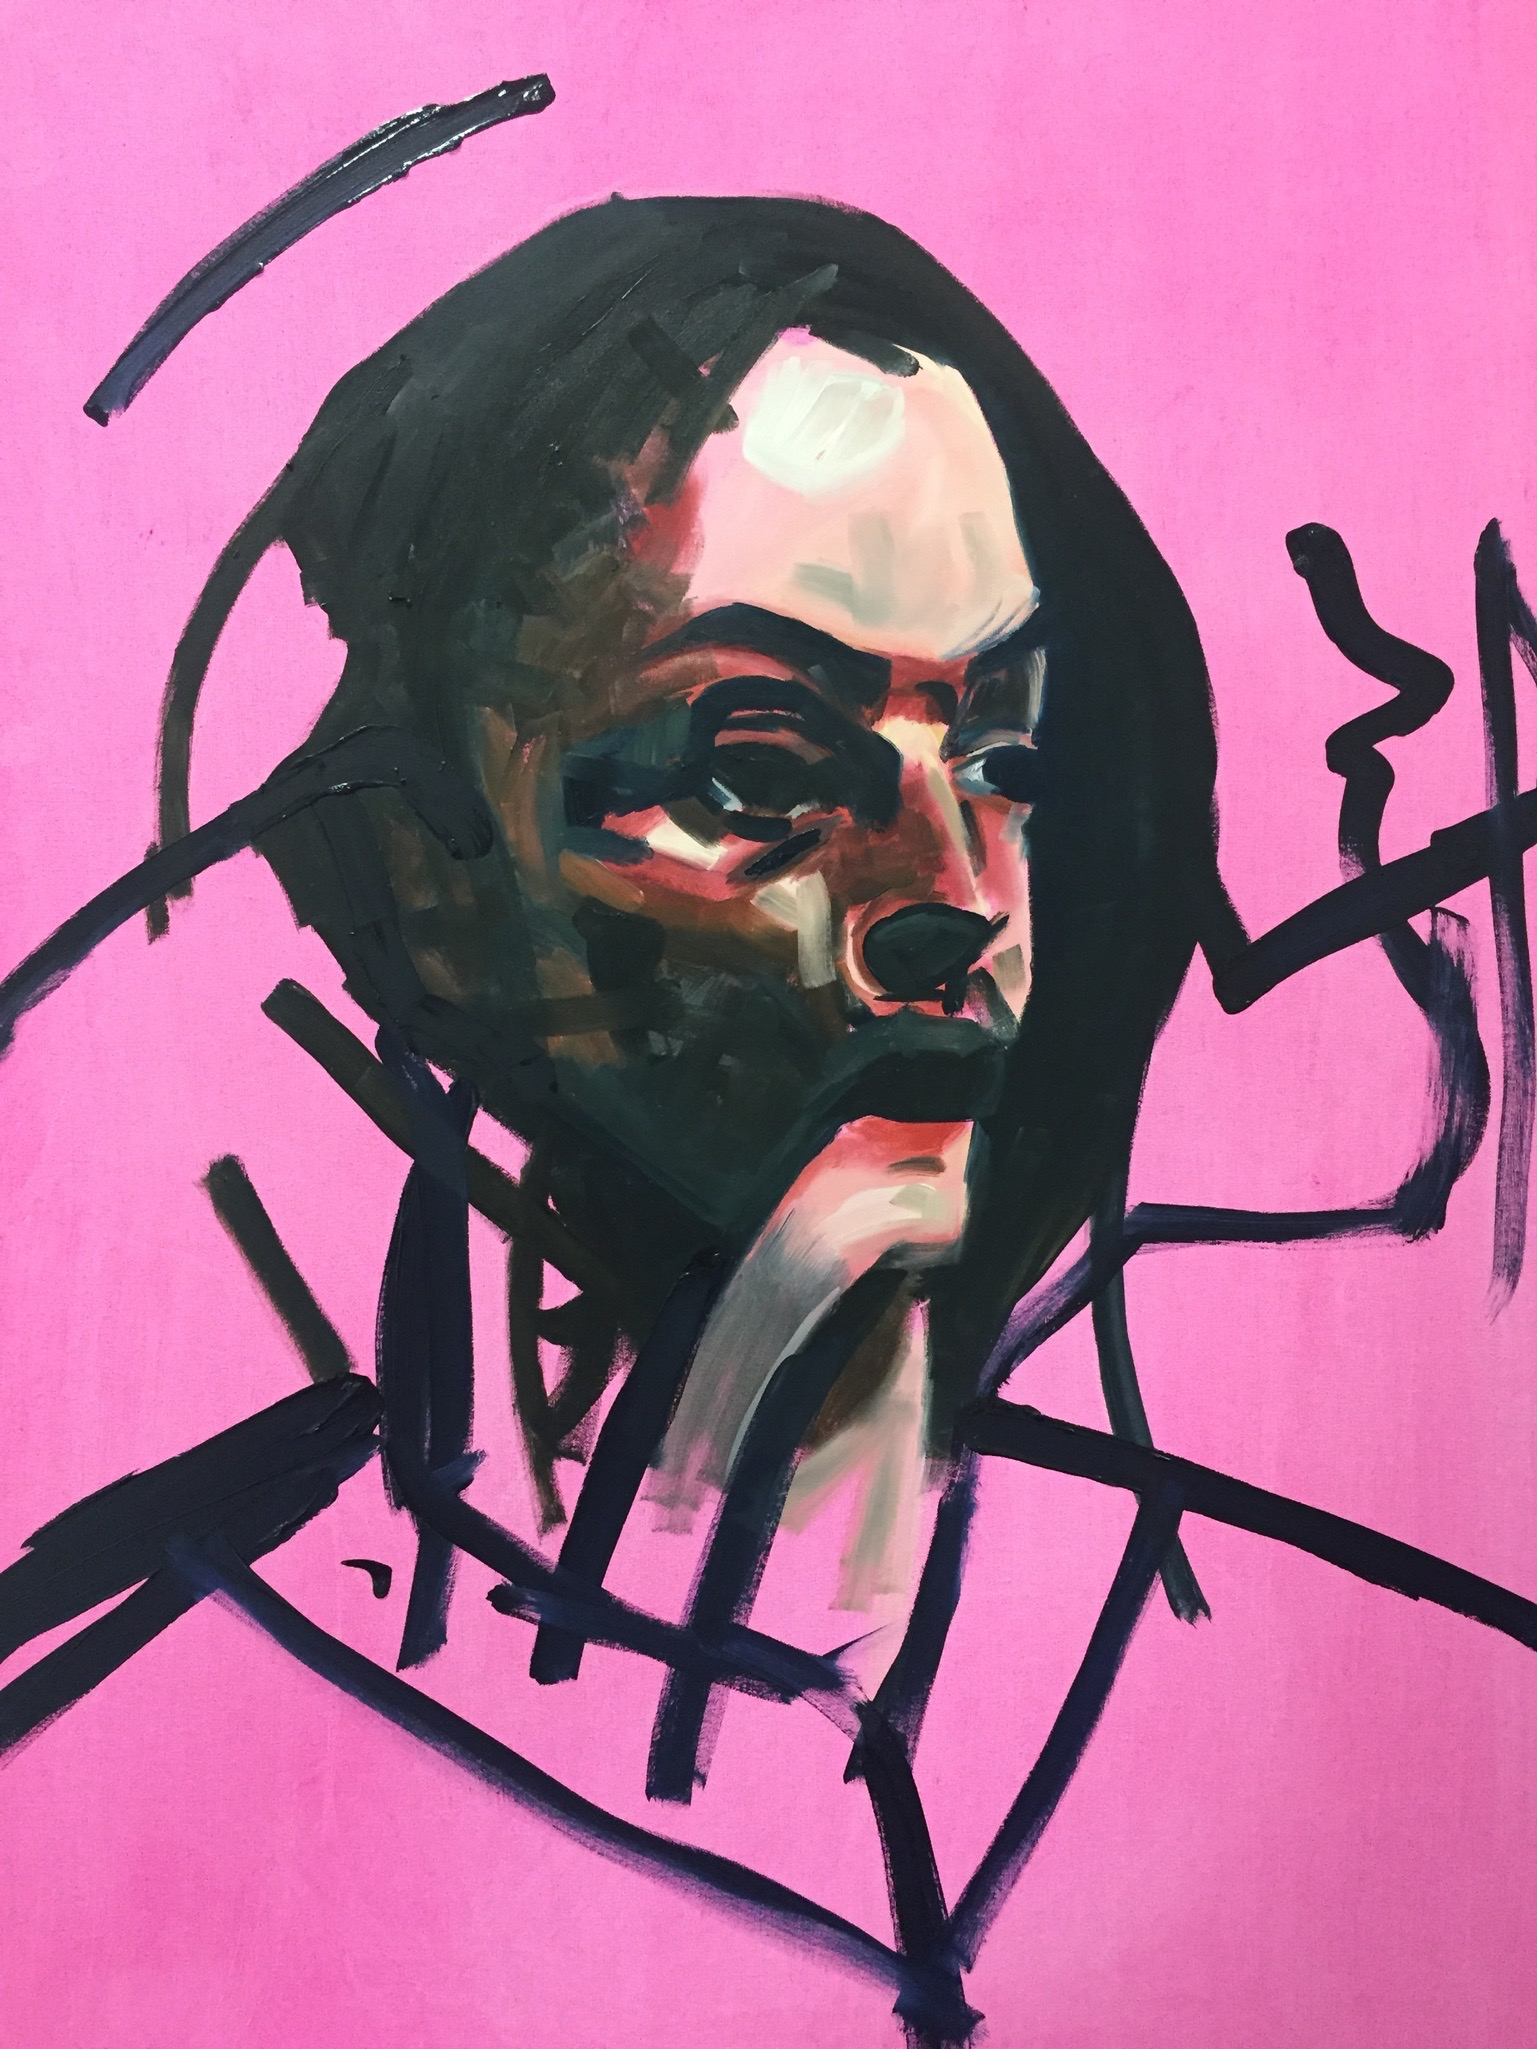 You left me beaten   50 x 60 cm / oil on canvas